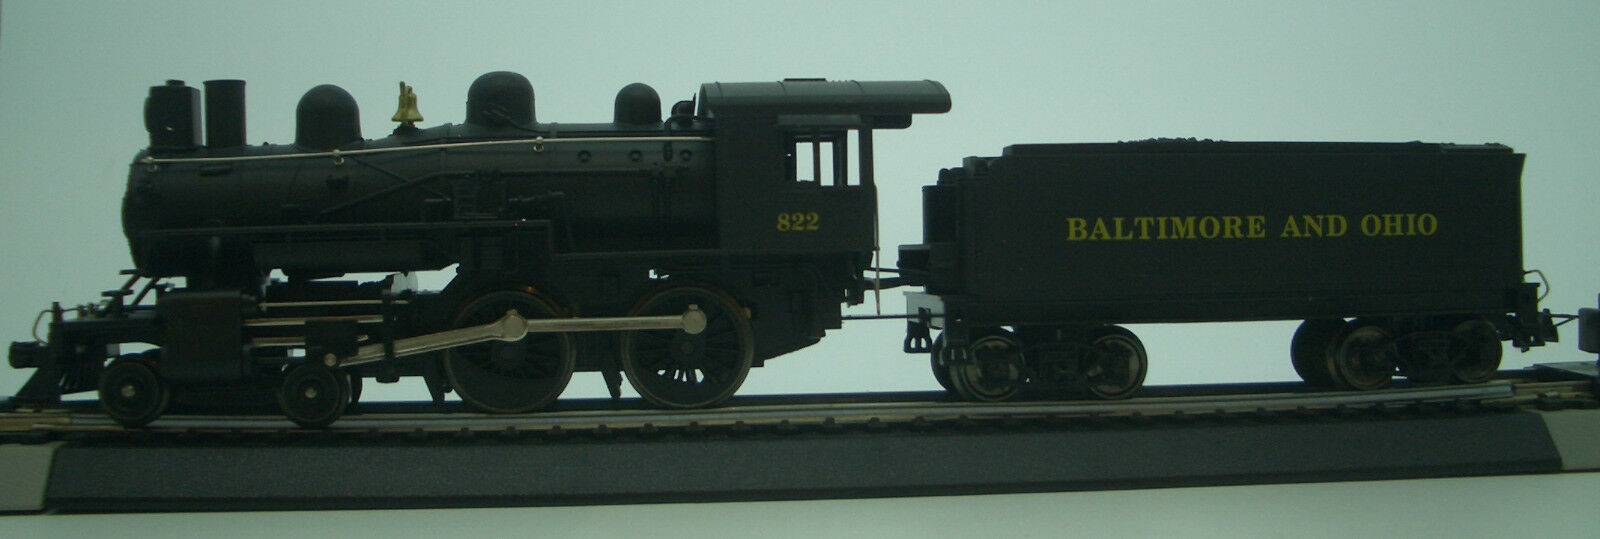 HO IHC   MEHANO 4-4-0 AMERICAN   BALTIMORE AND OHIO  ROAD   822   M804 DCC READY